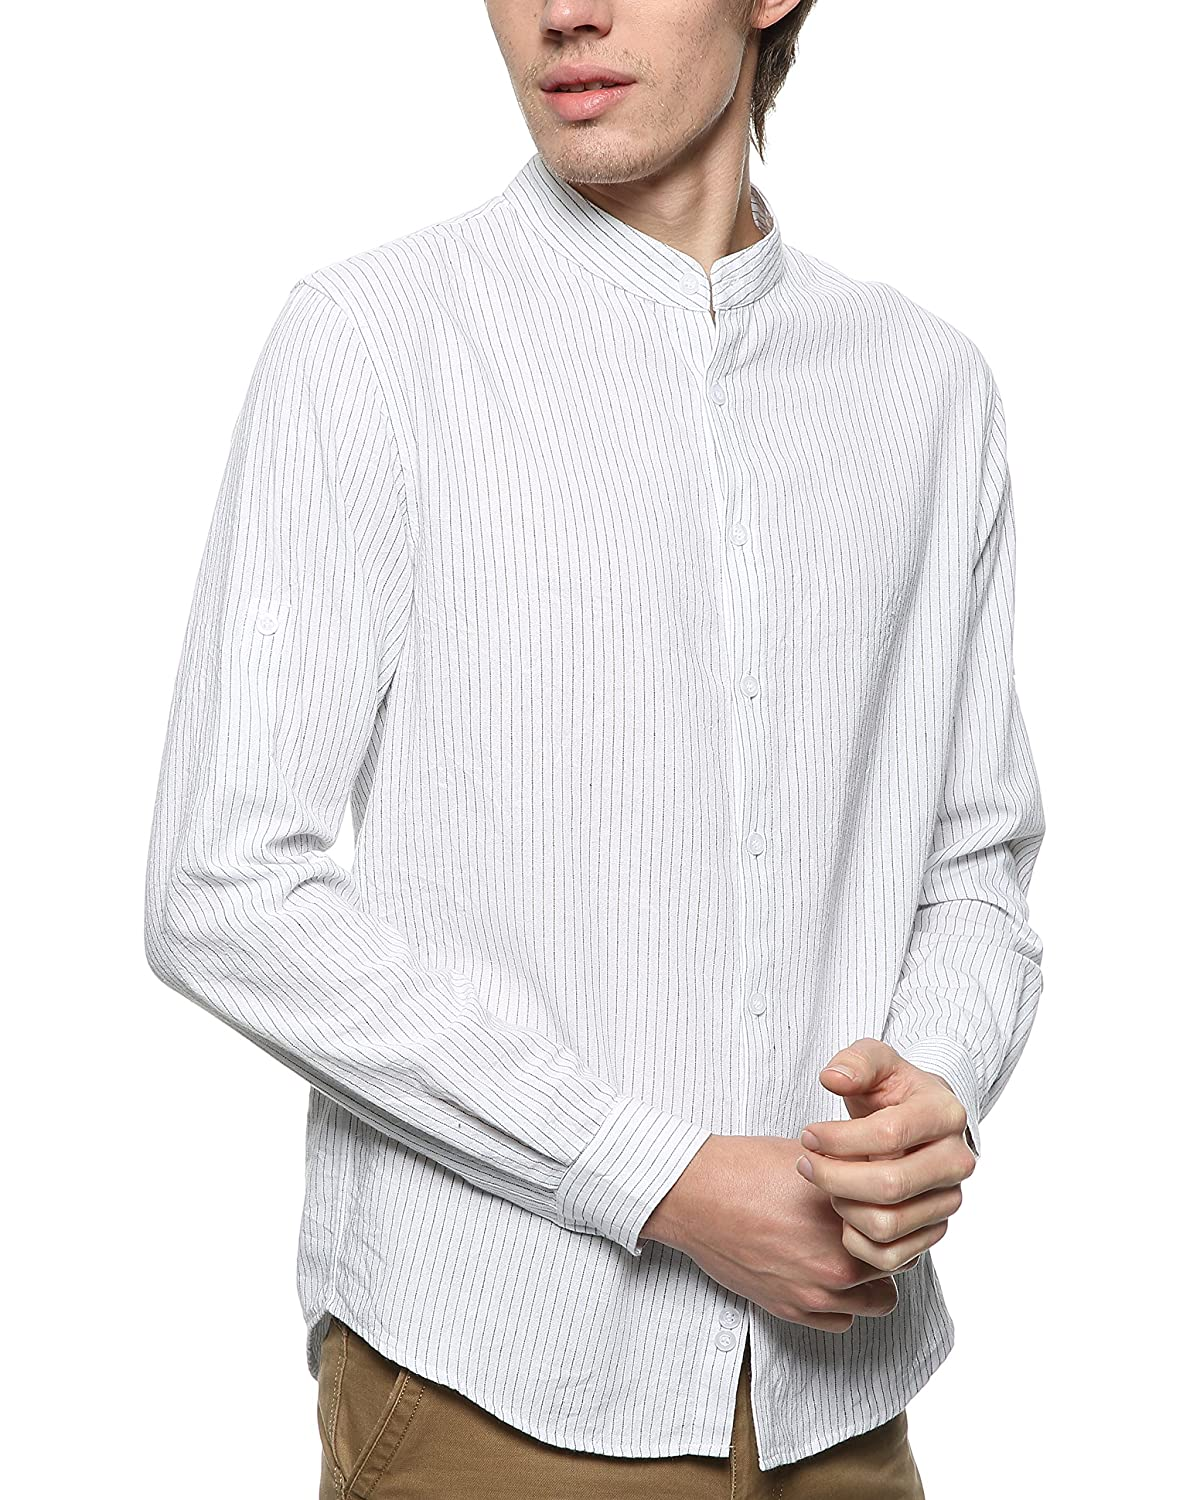 1920s Style Mens Shirts | Peaky Blinders Shirts and Collars BYLUNTA Men Regular Fit Band Collar 100% Cotton Pinstripe Long Sleeve Daily Office Casual Business Shirt $29.99 AT vintagedancer.com